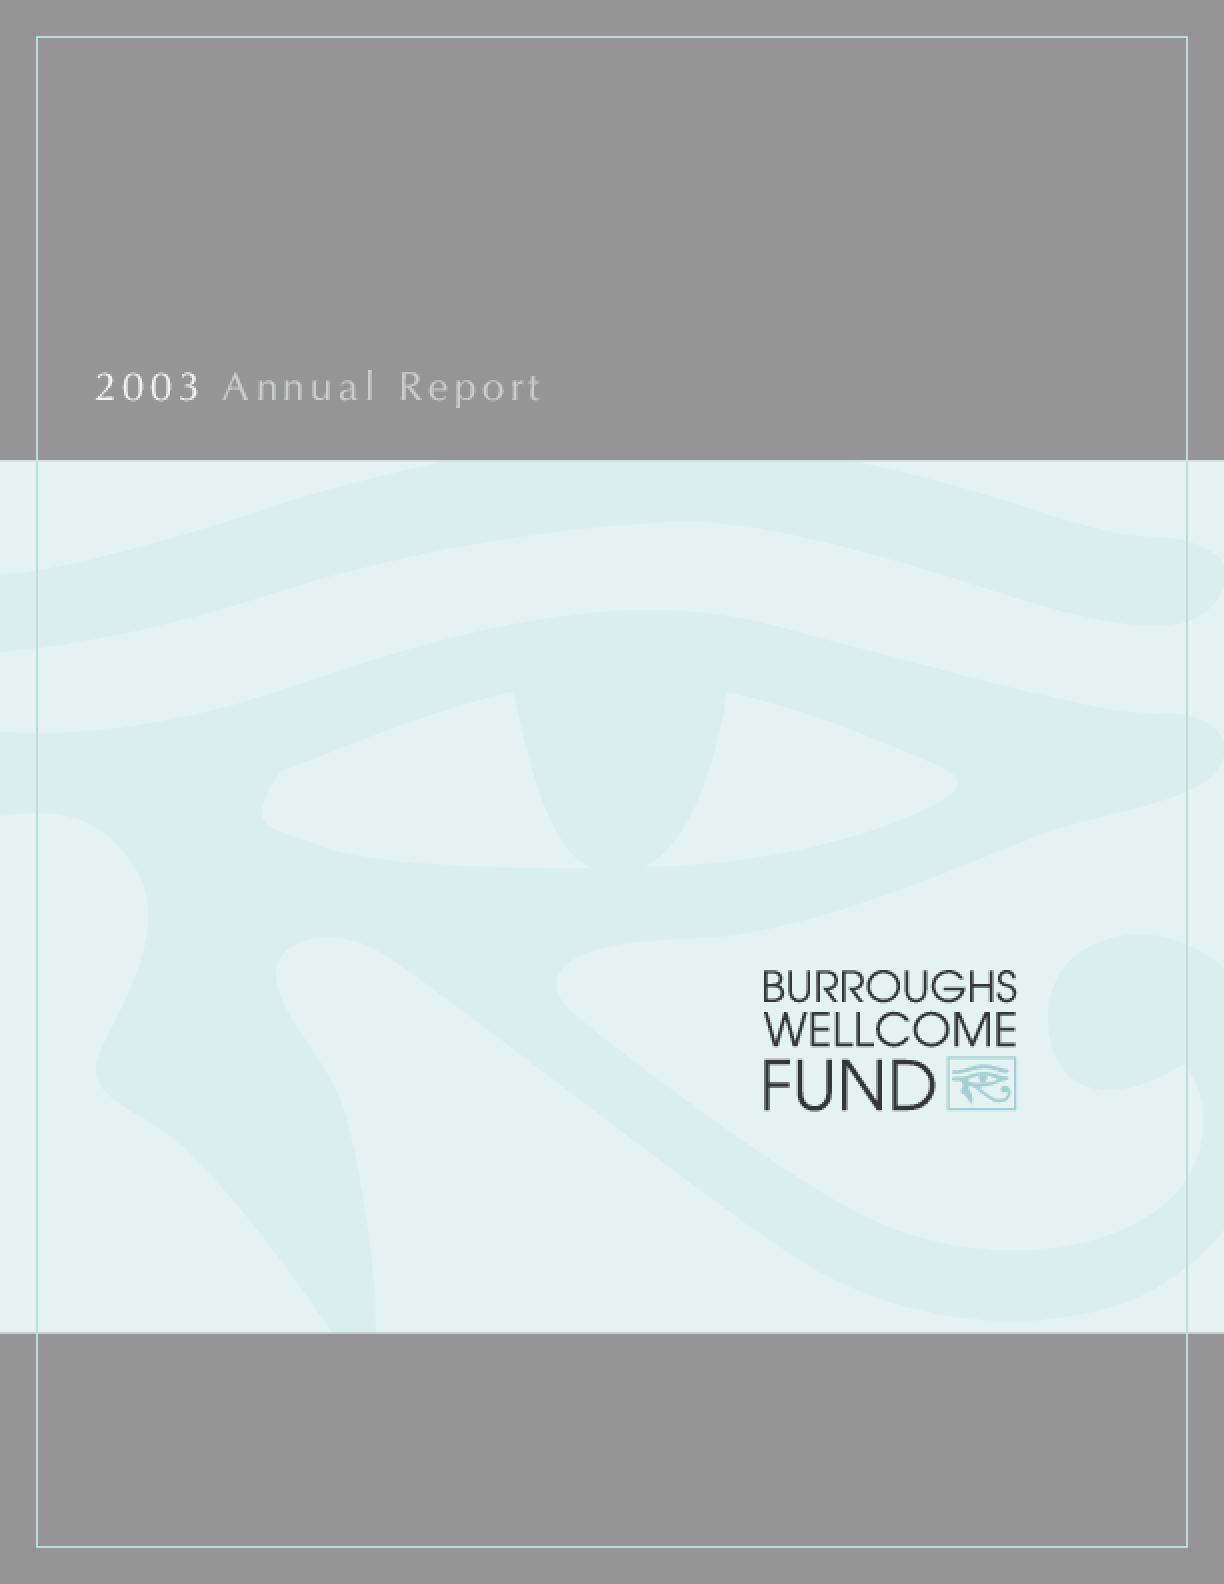 Burroughs Wellcome Fund - 2003 Annual Report